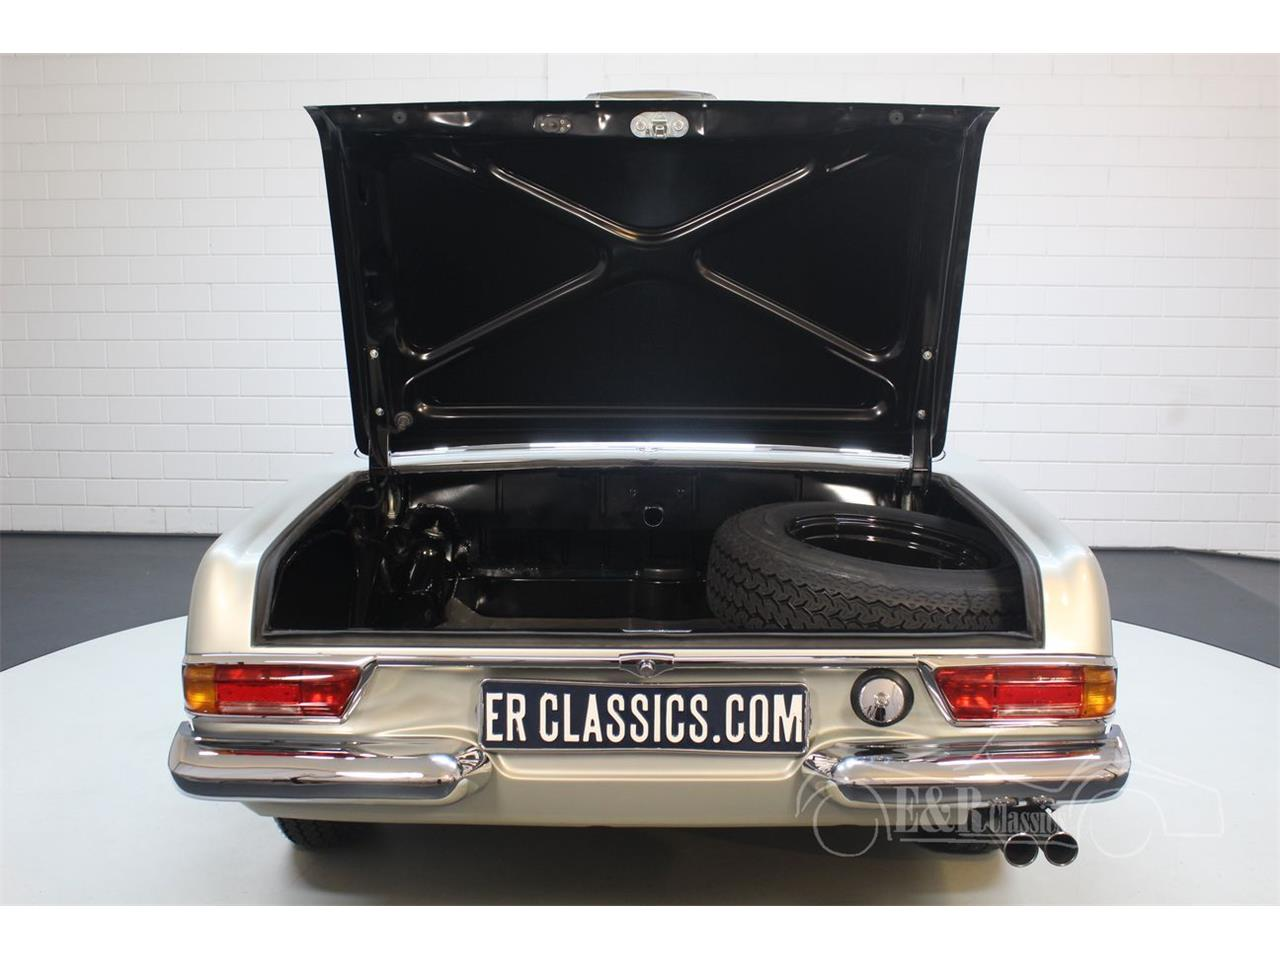 Large Picture of Classic 1969 Mercedes-Benz 280SL located in Waalwijk noord brabant - $190,500.00 - Q9A0